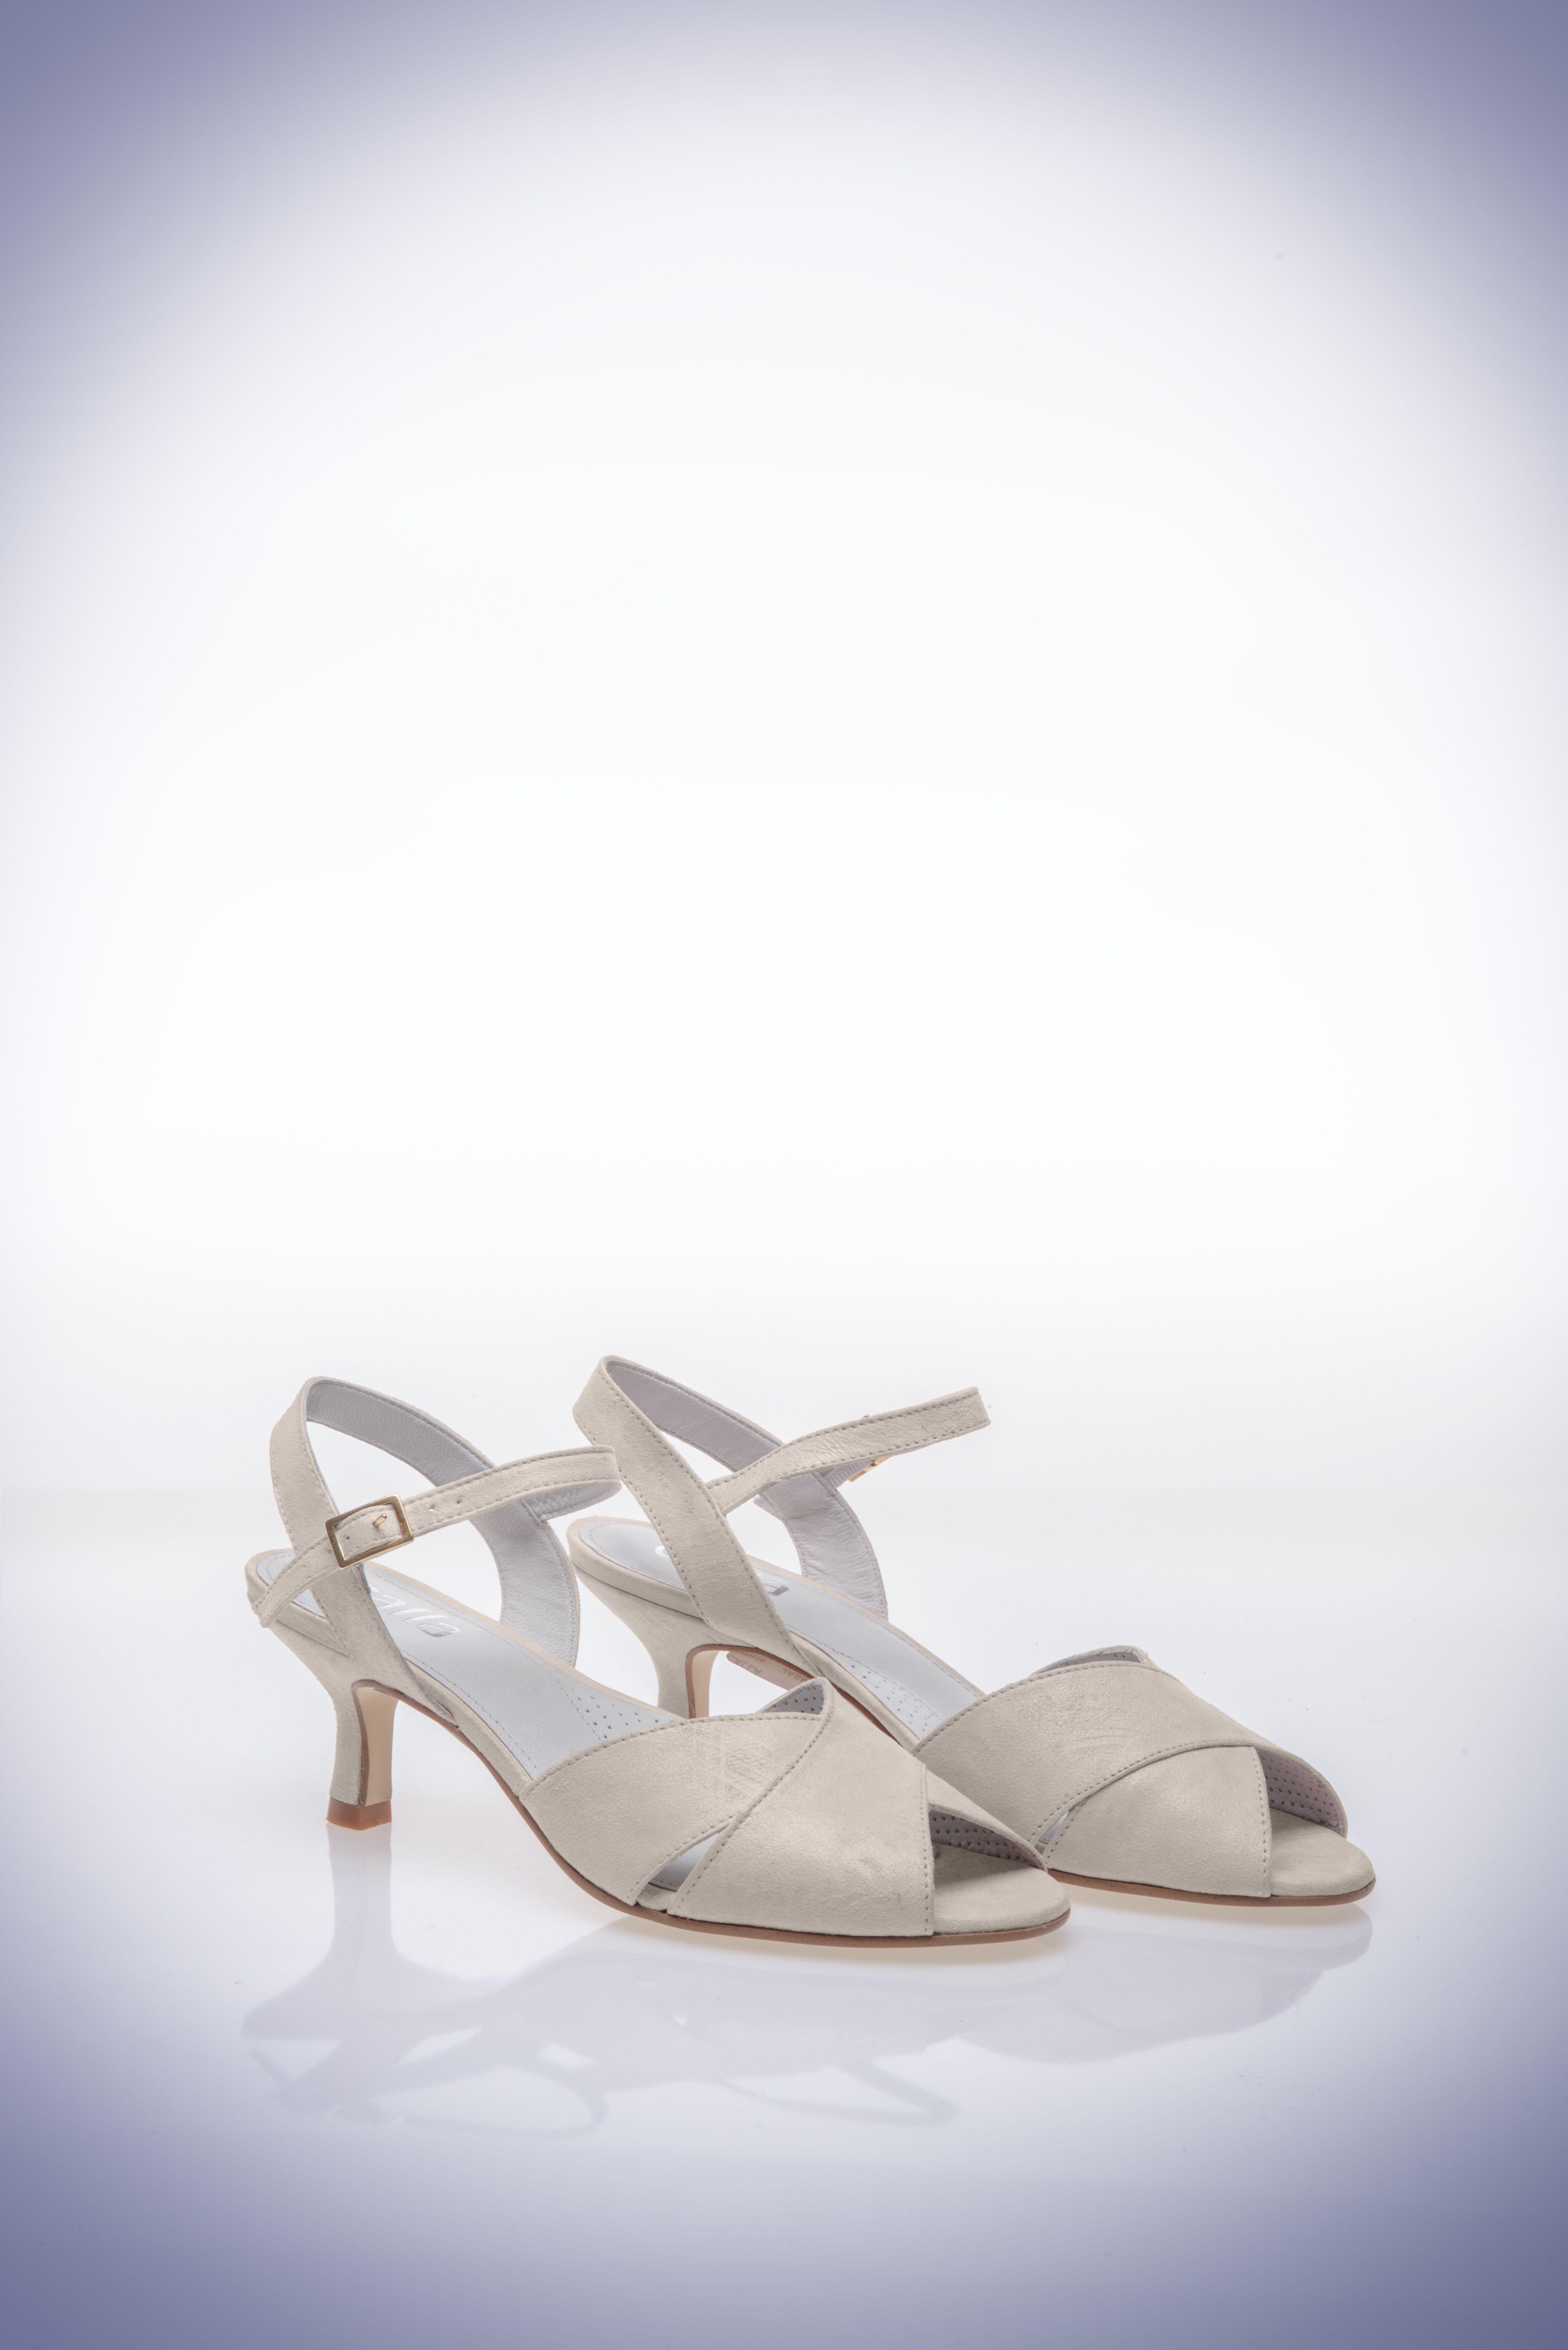 c75a6c0984f12 Perfect for the lady who can't take too much hight in her heel. If you  suffer from bunions these special occasion shoes are for you, perfect kitten  ...